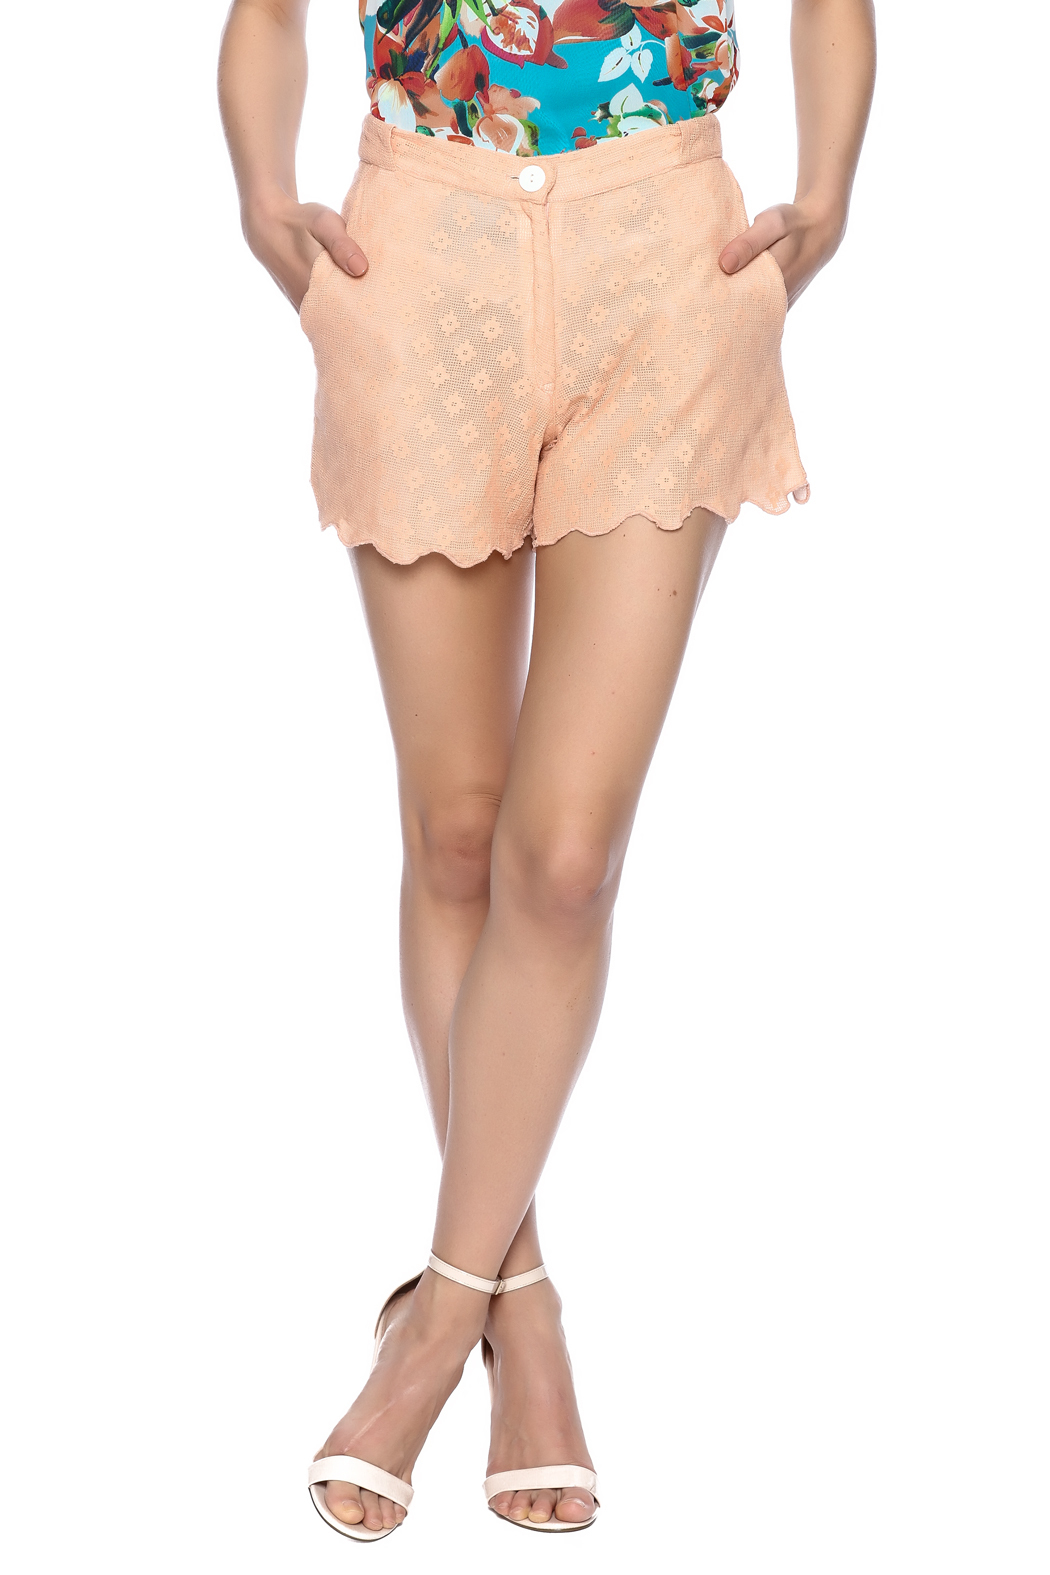 Z&L Europe Peach Lace Shorts - Main Image